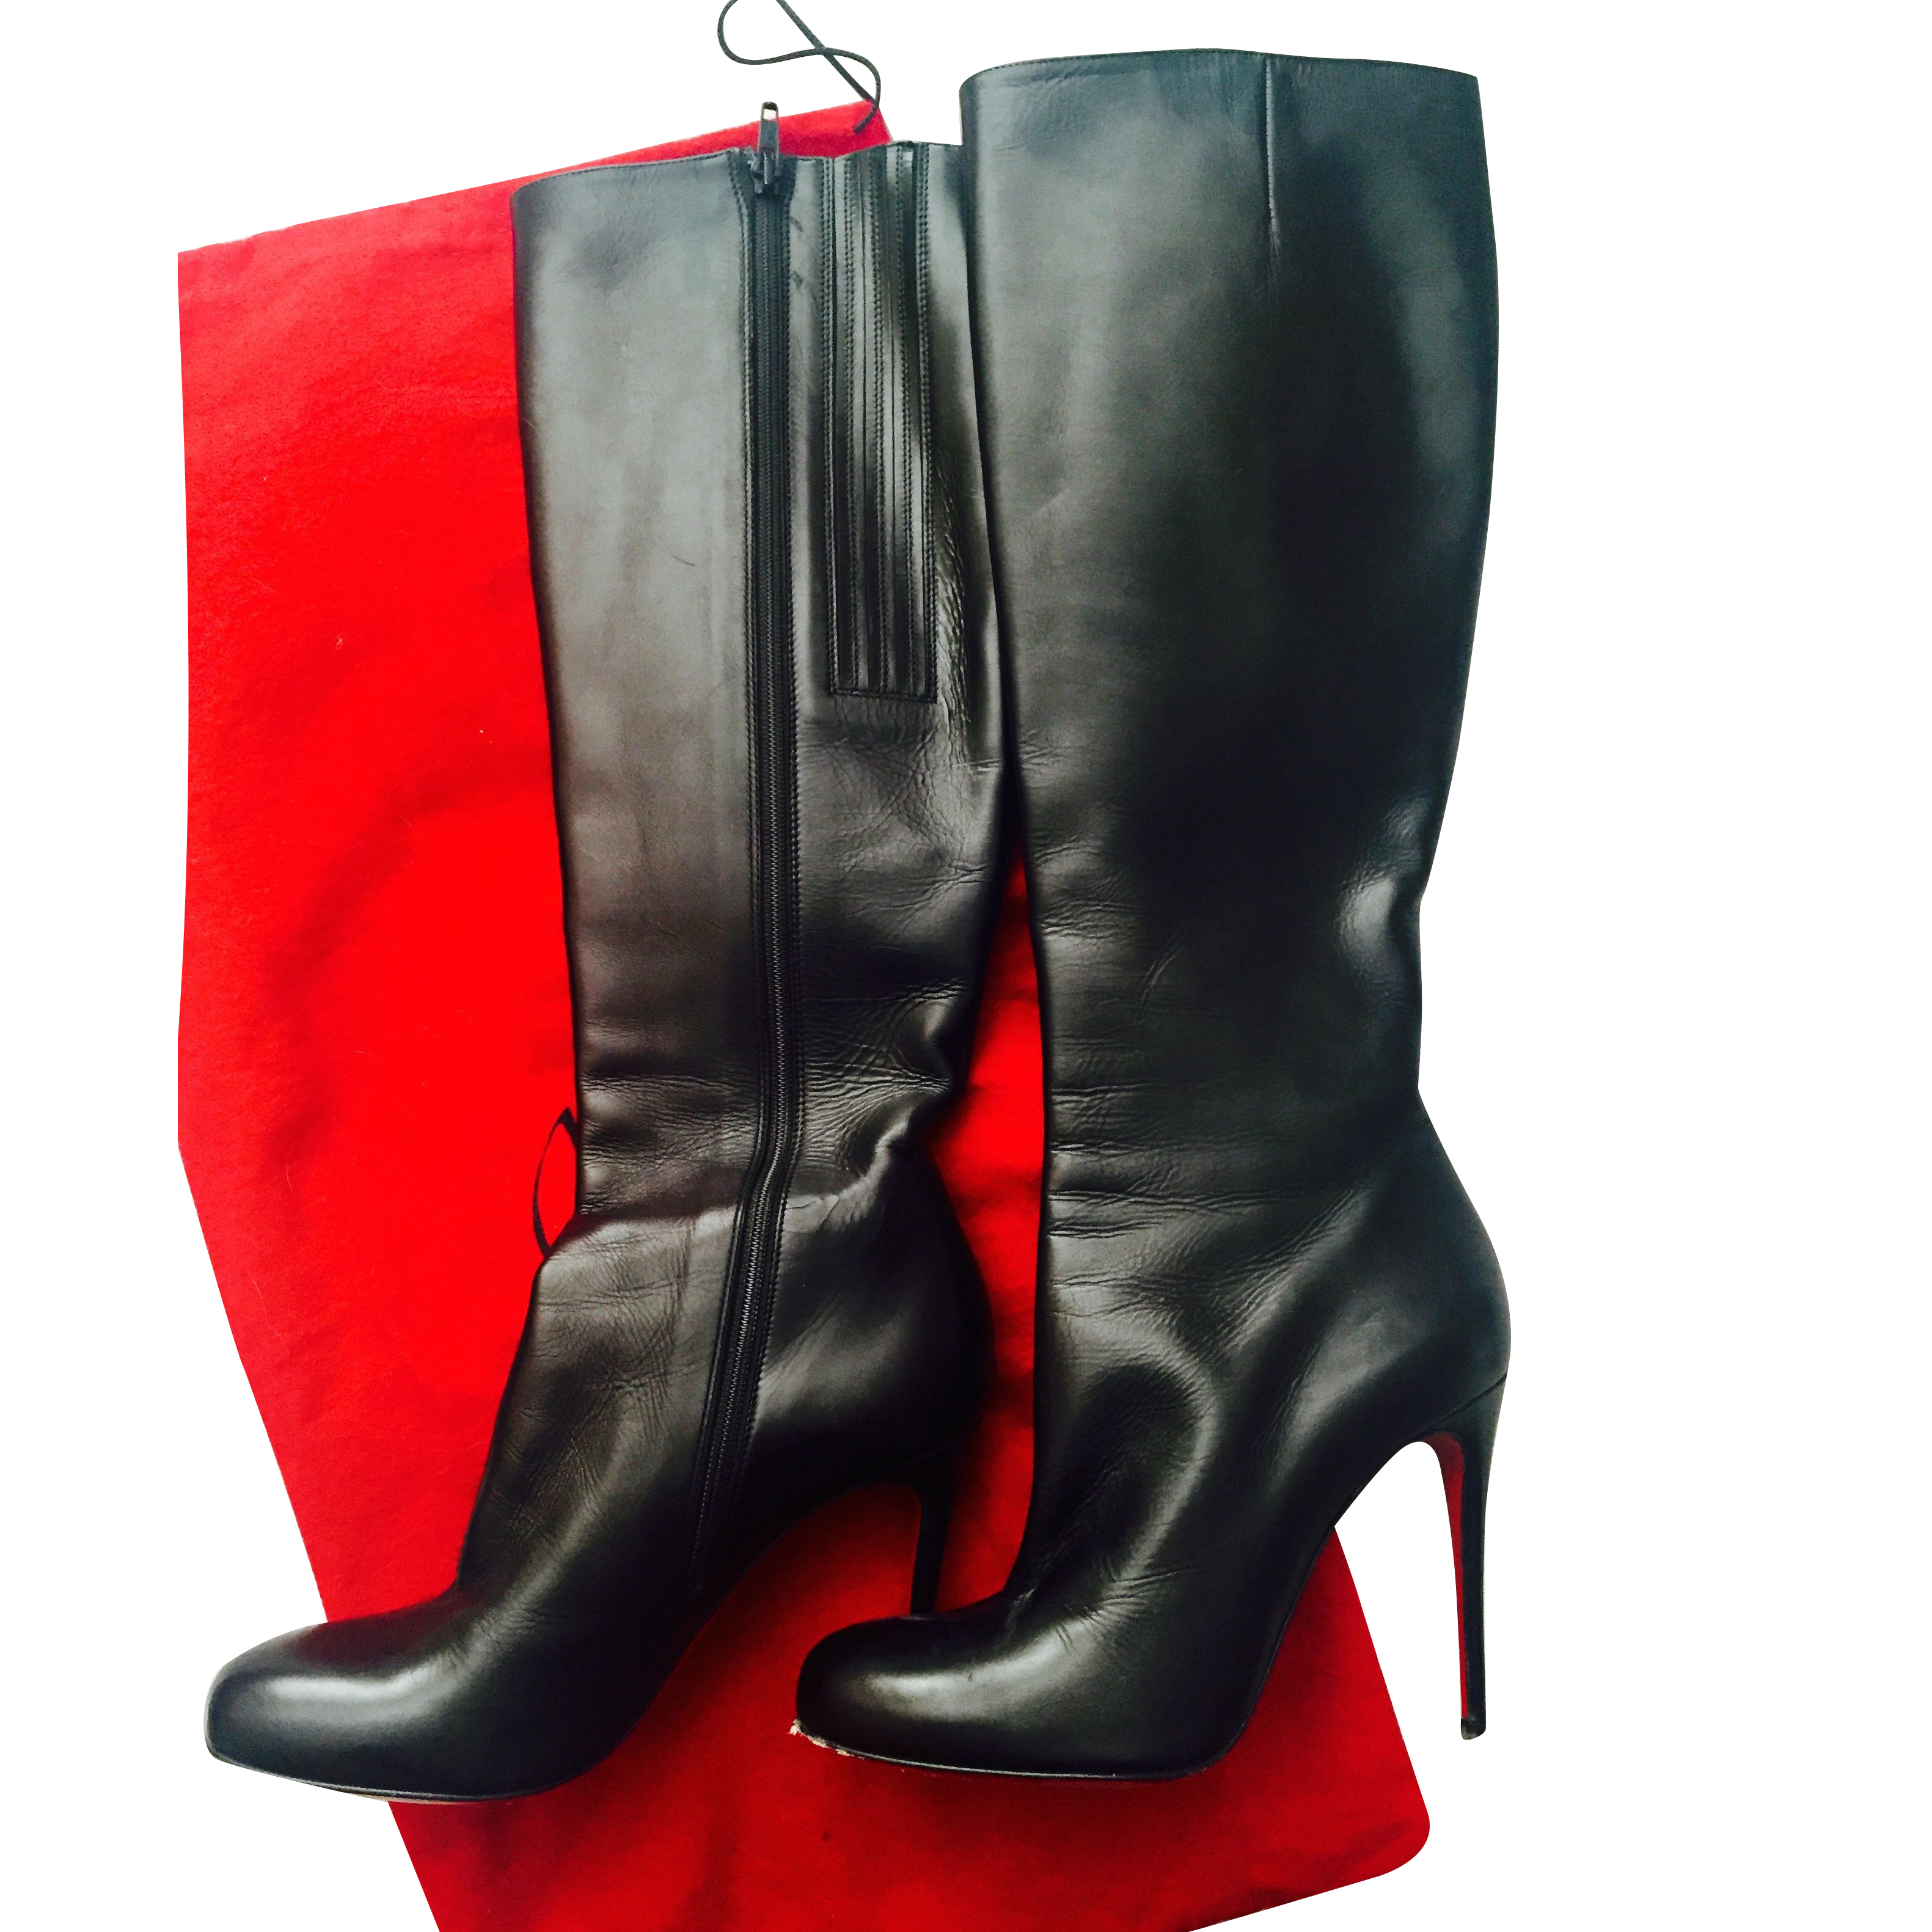 new style 4492f 66559 Christian Louboutin Leather High Heel Boots